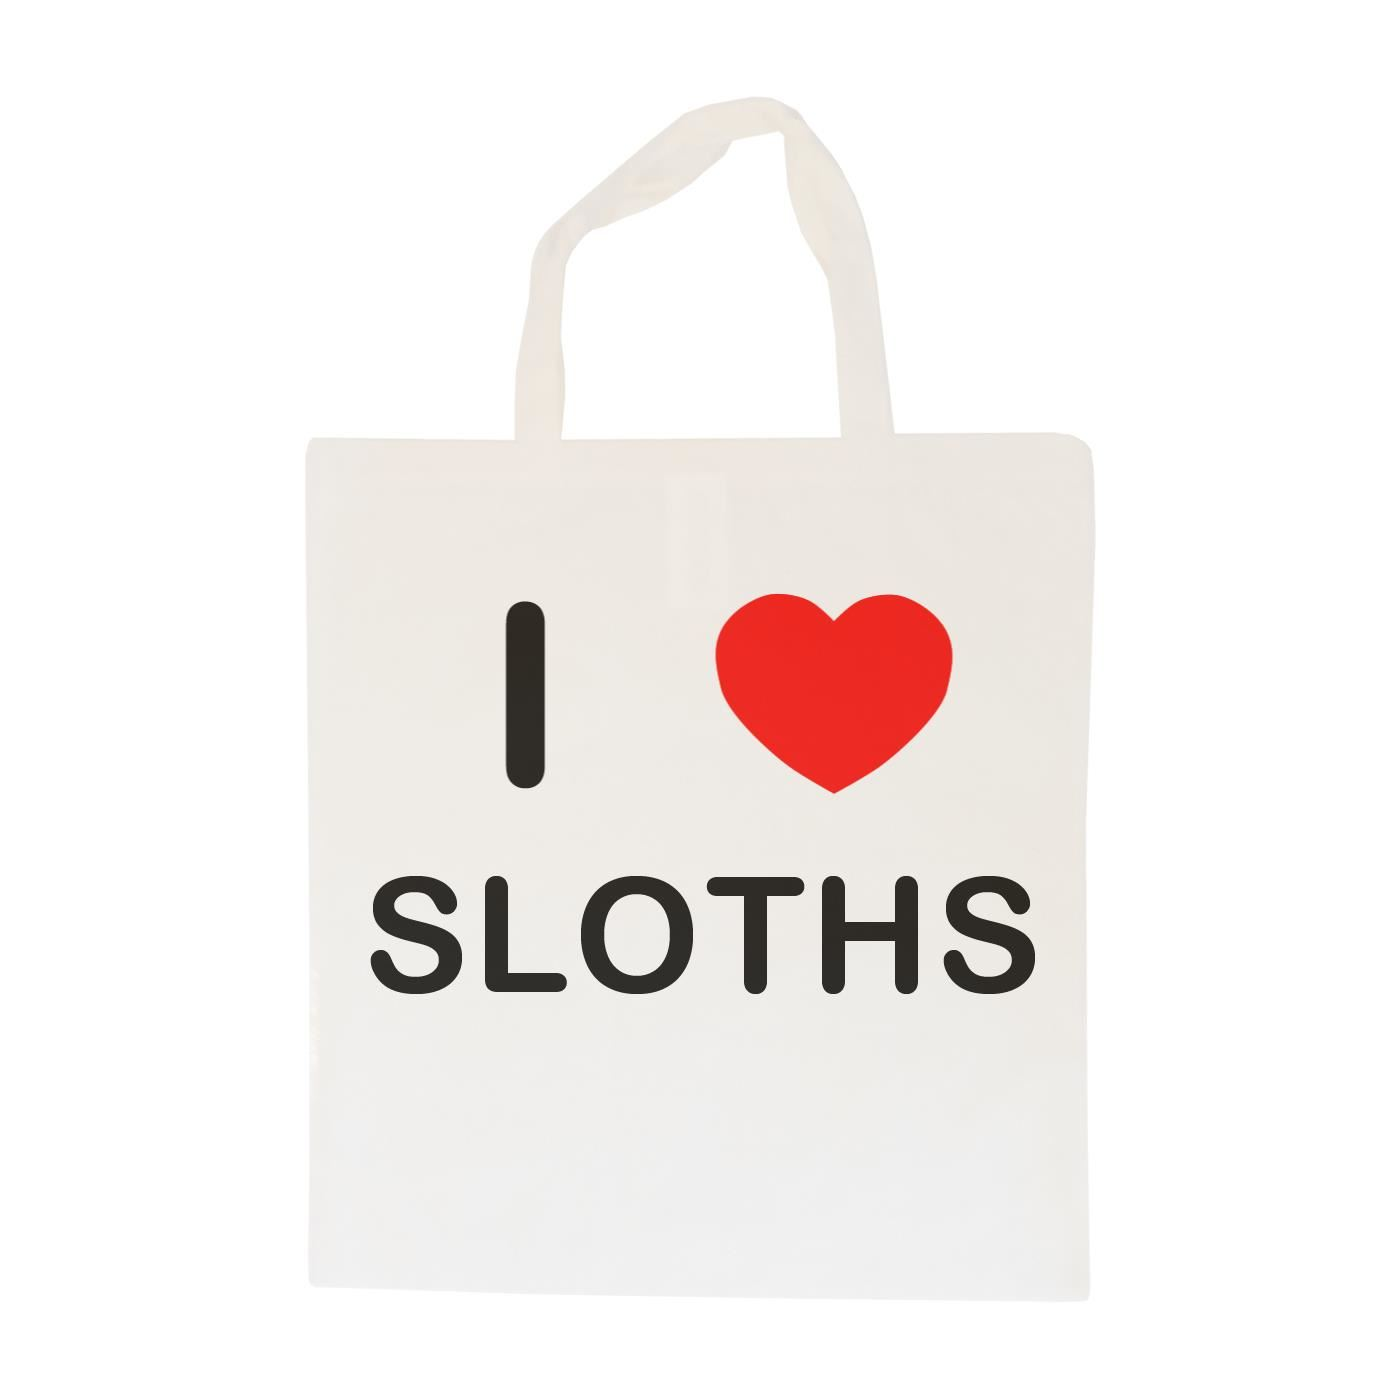 I Love Sloths - Cotton Bag | Size choice Tote, Shopper or Sling